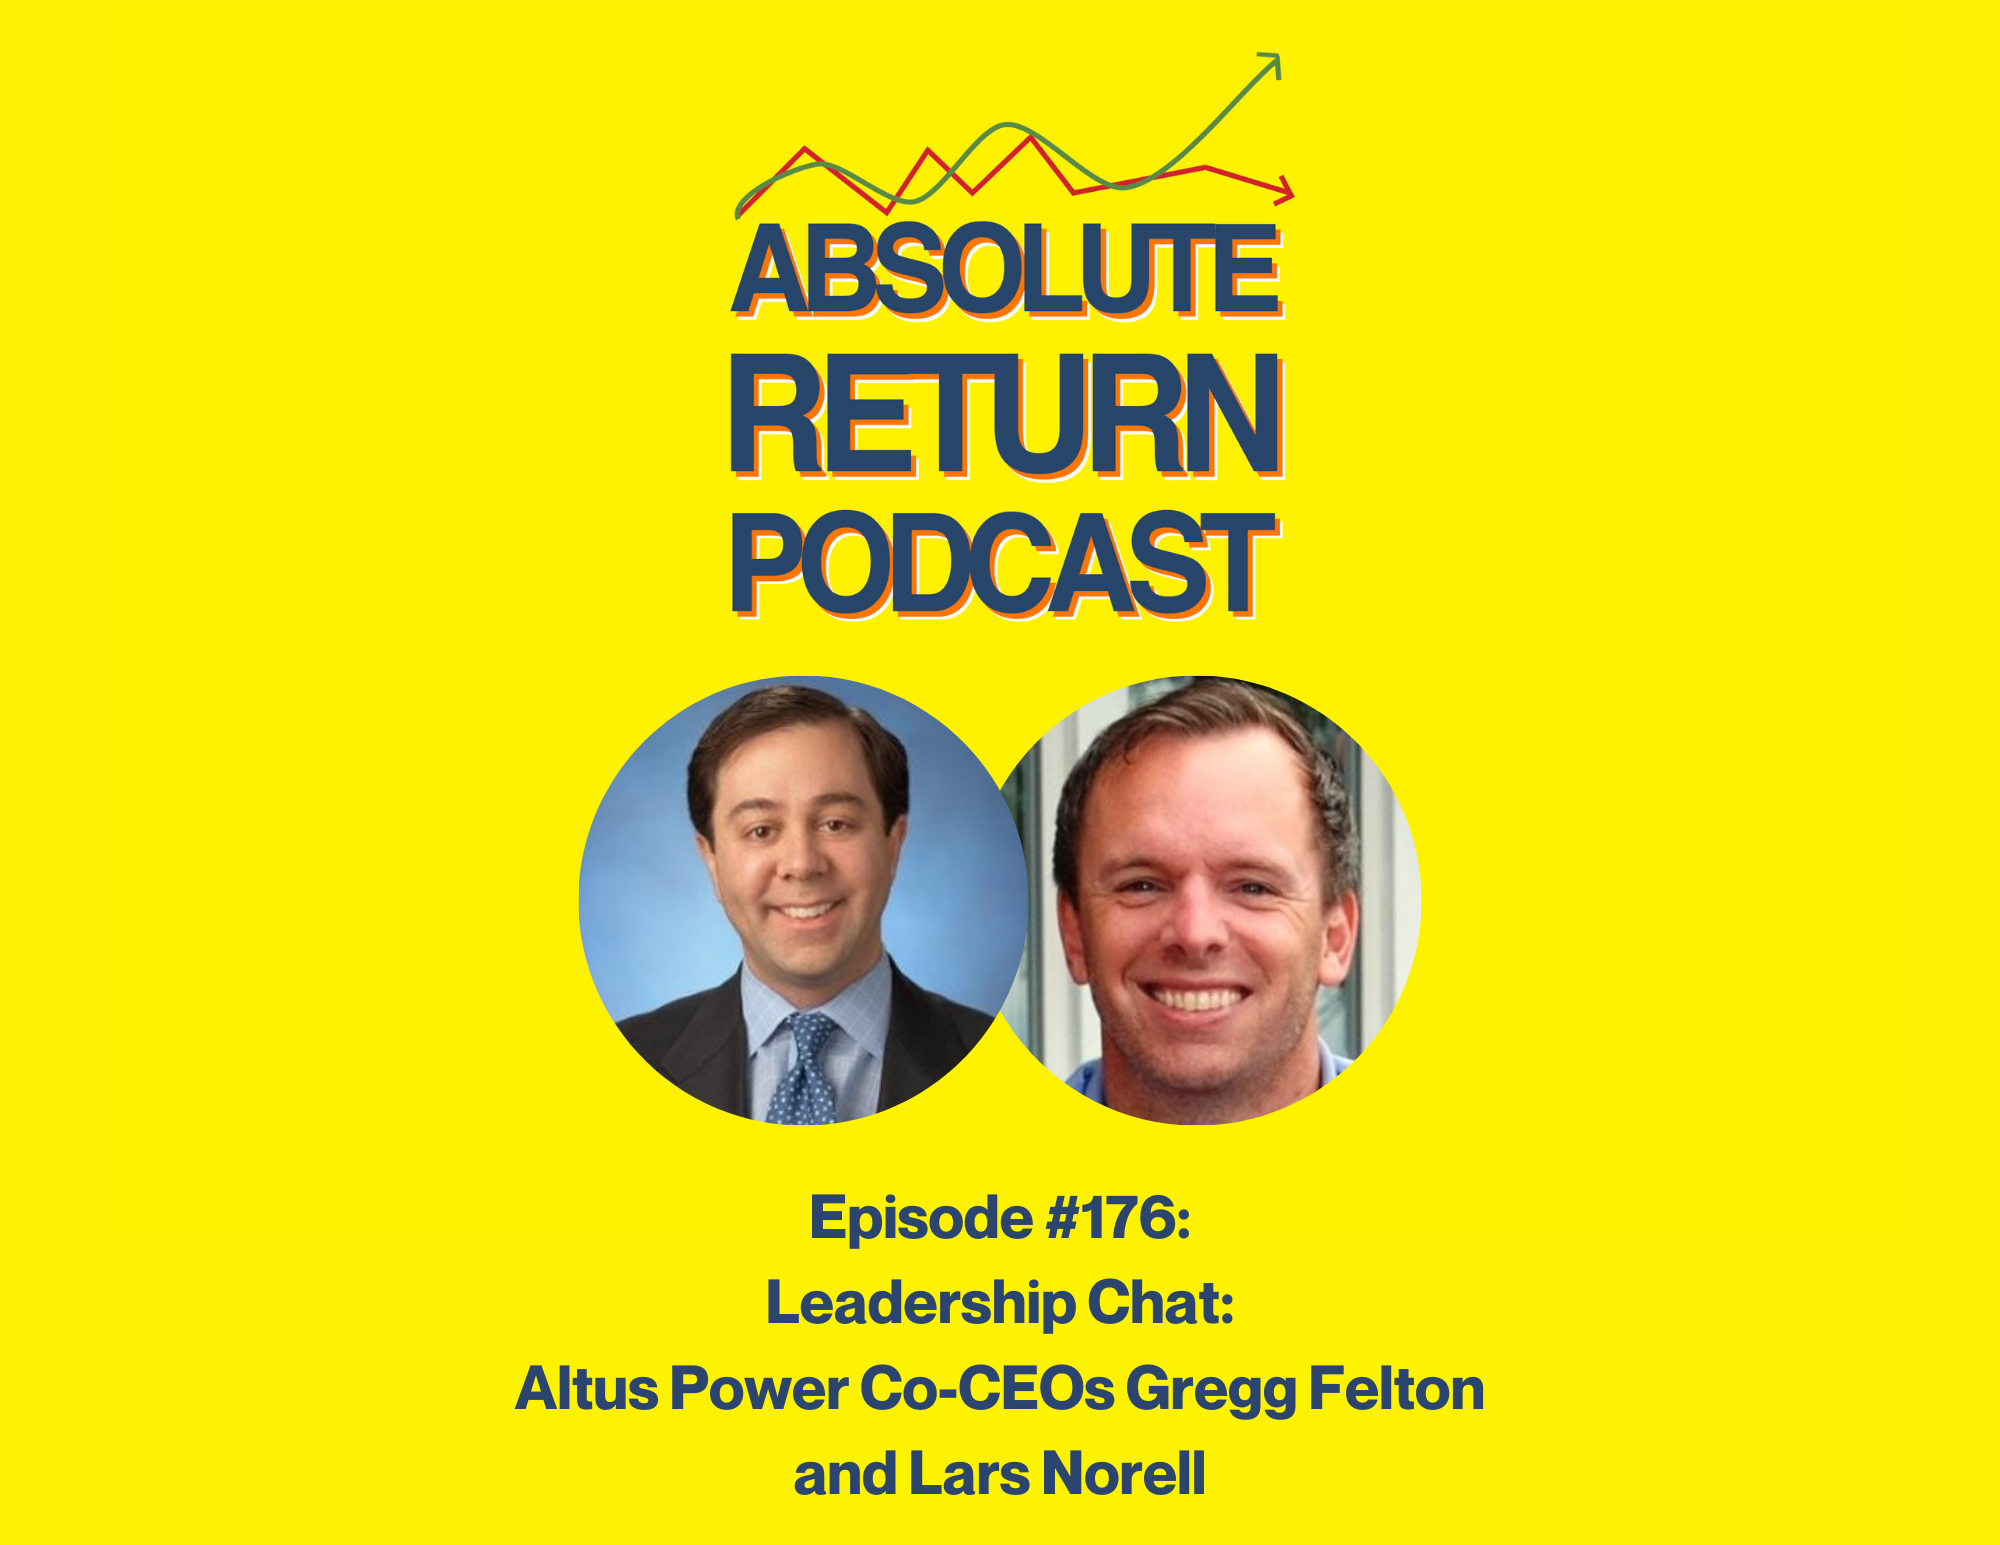 Absolute Return Podcast #176: Leadership Chat:  Altus Power Co-CEOs Gregg Felton and Lars Norell